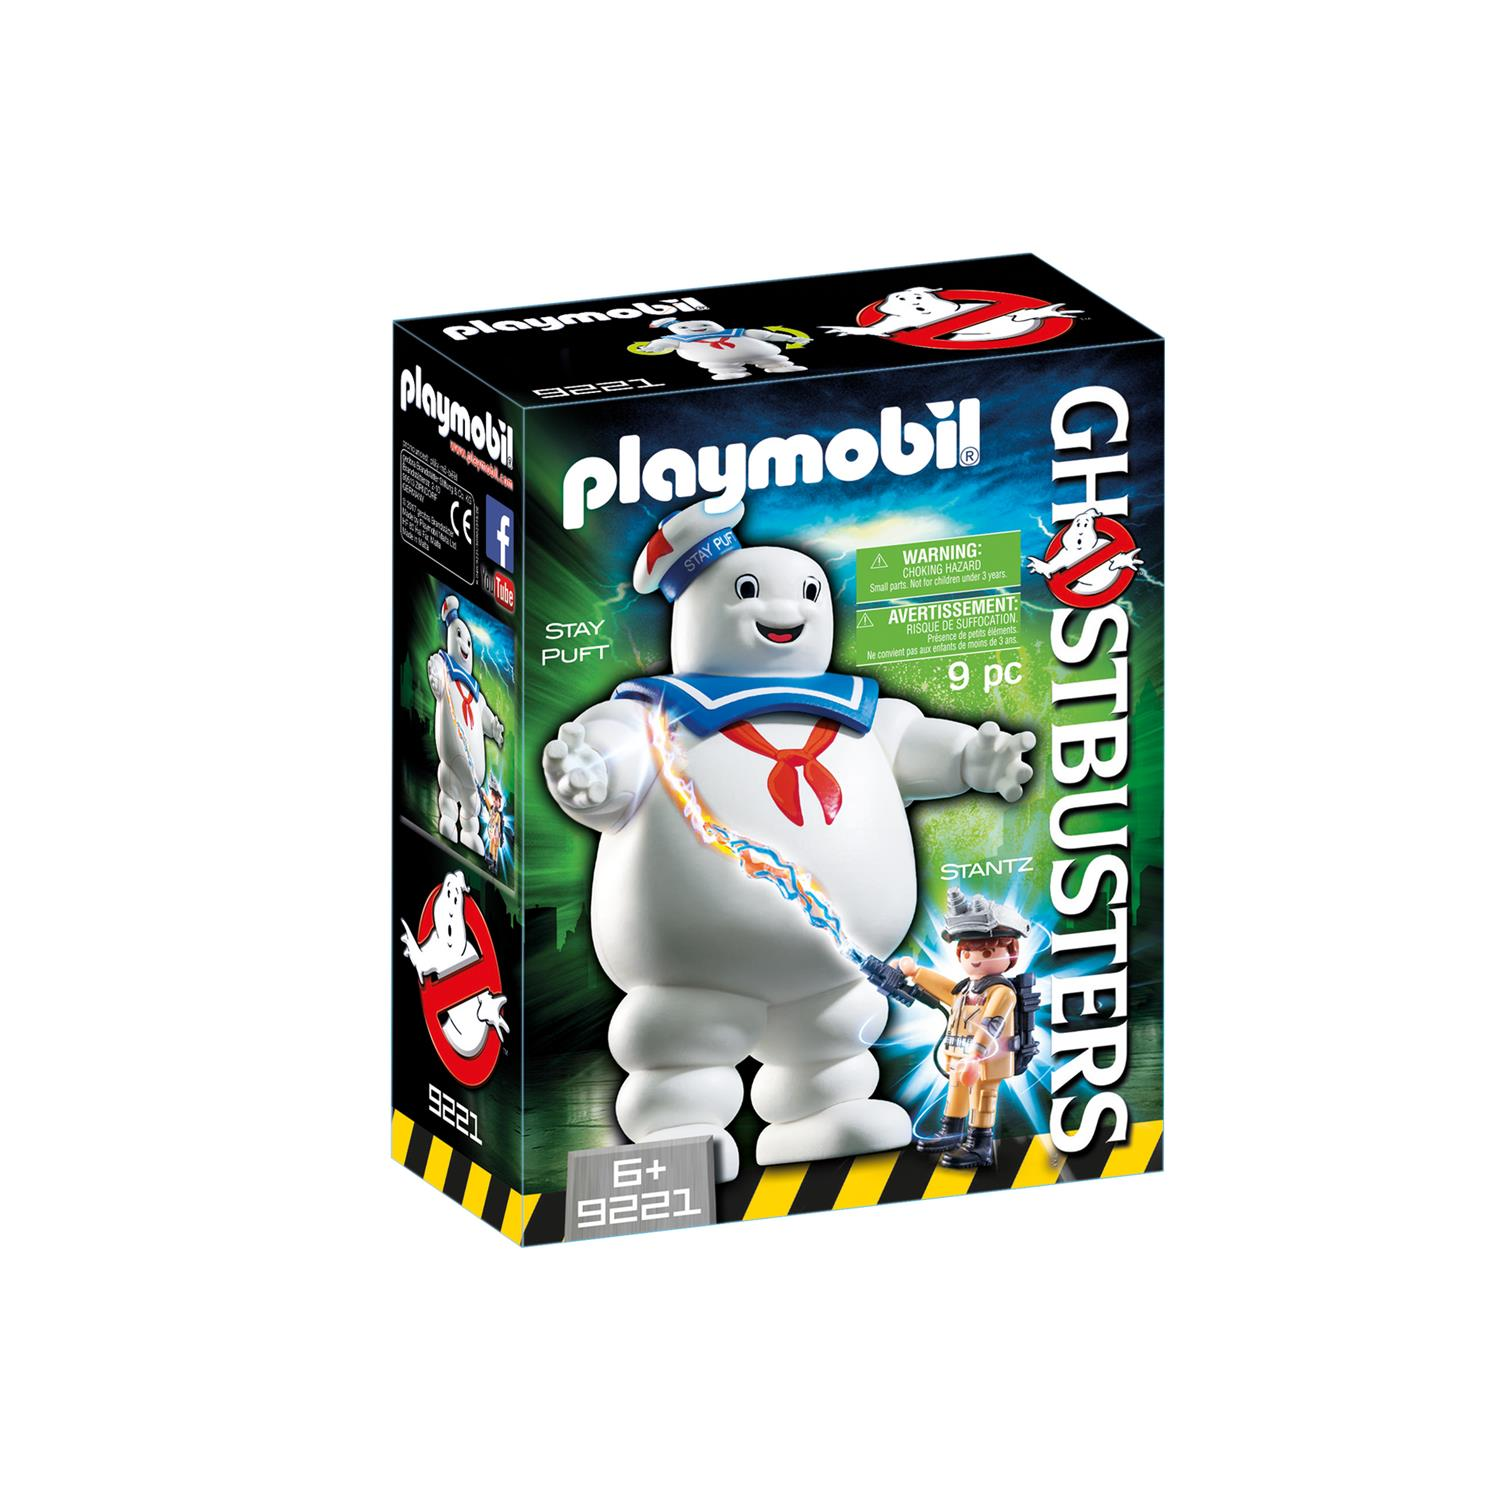 Lego Küche 70er Playmobil 9221 Ghostbusters Marshmallow Man